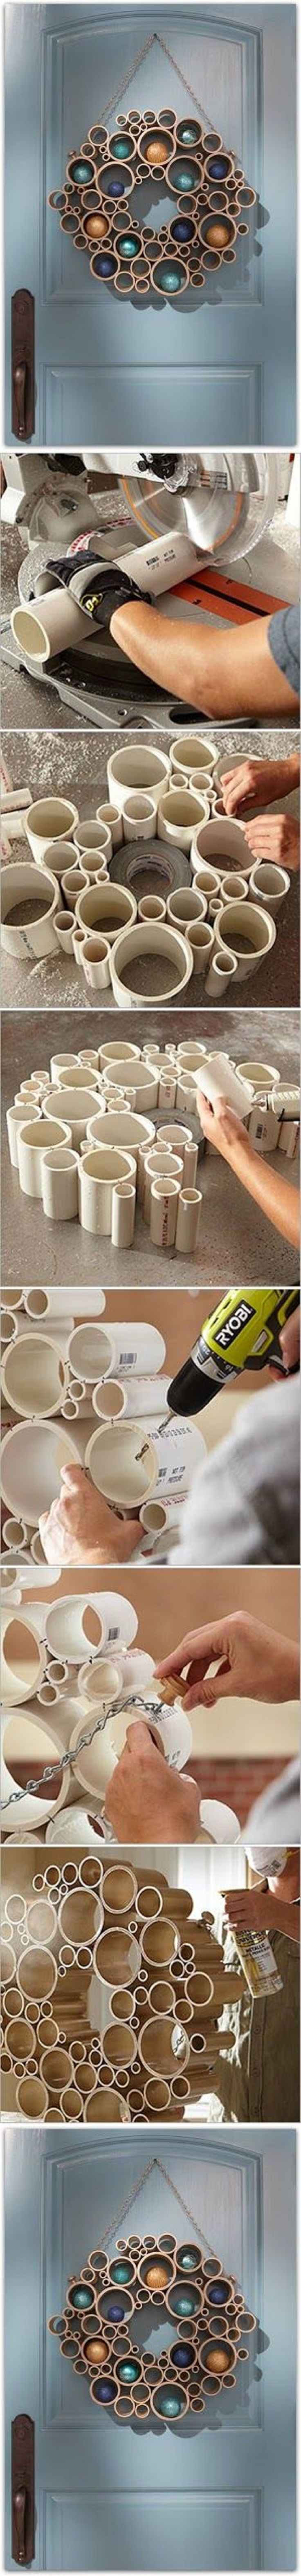 10 Simply Breathtaking DIY Home Decor Projects That Will Magically Beautify Your Interior homesthetics (3)